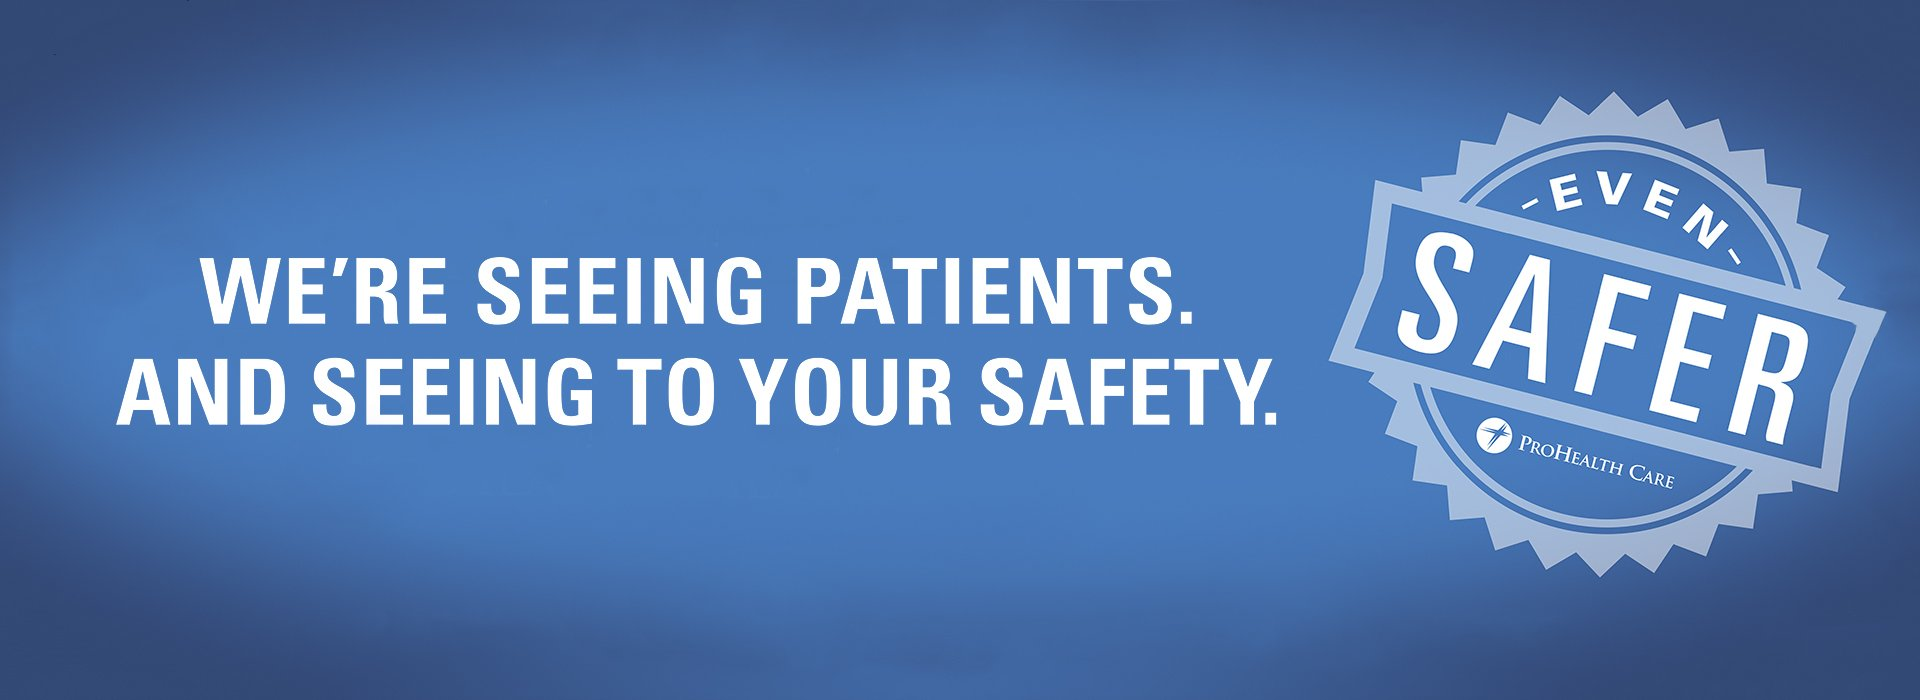 We're seeing patients. And seeing to your safety.